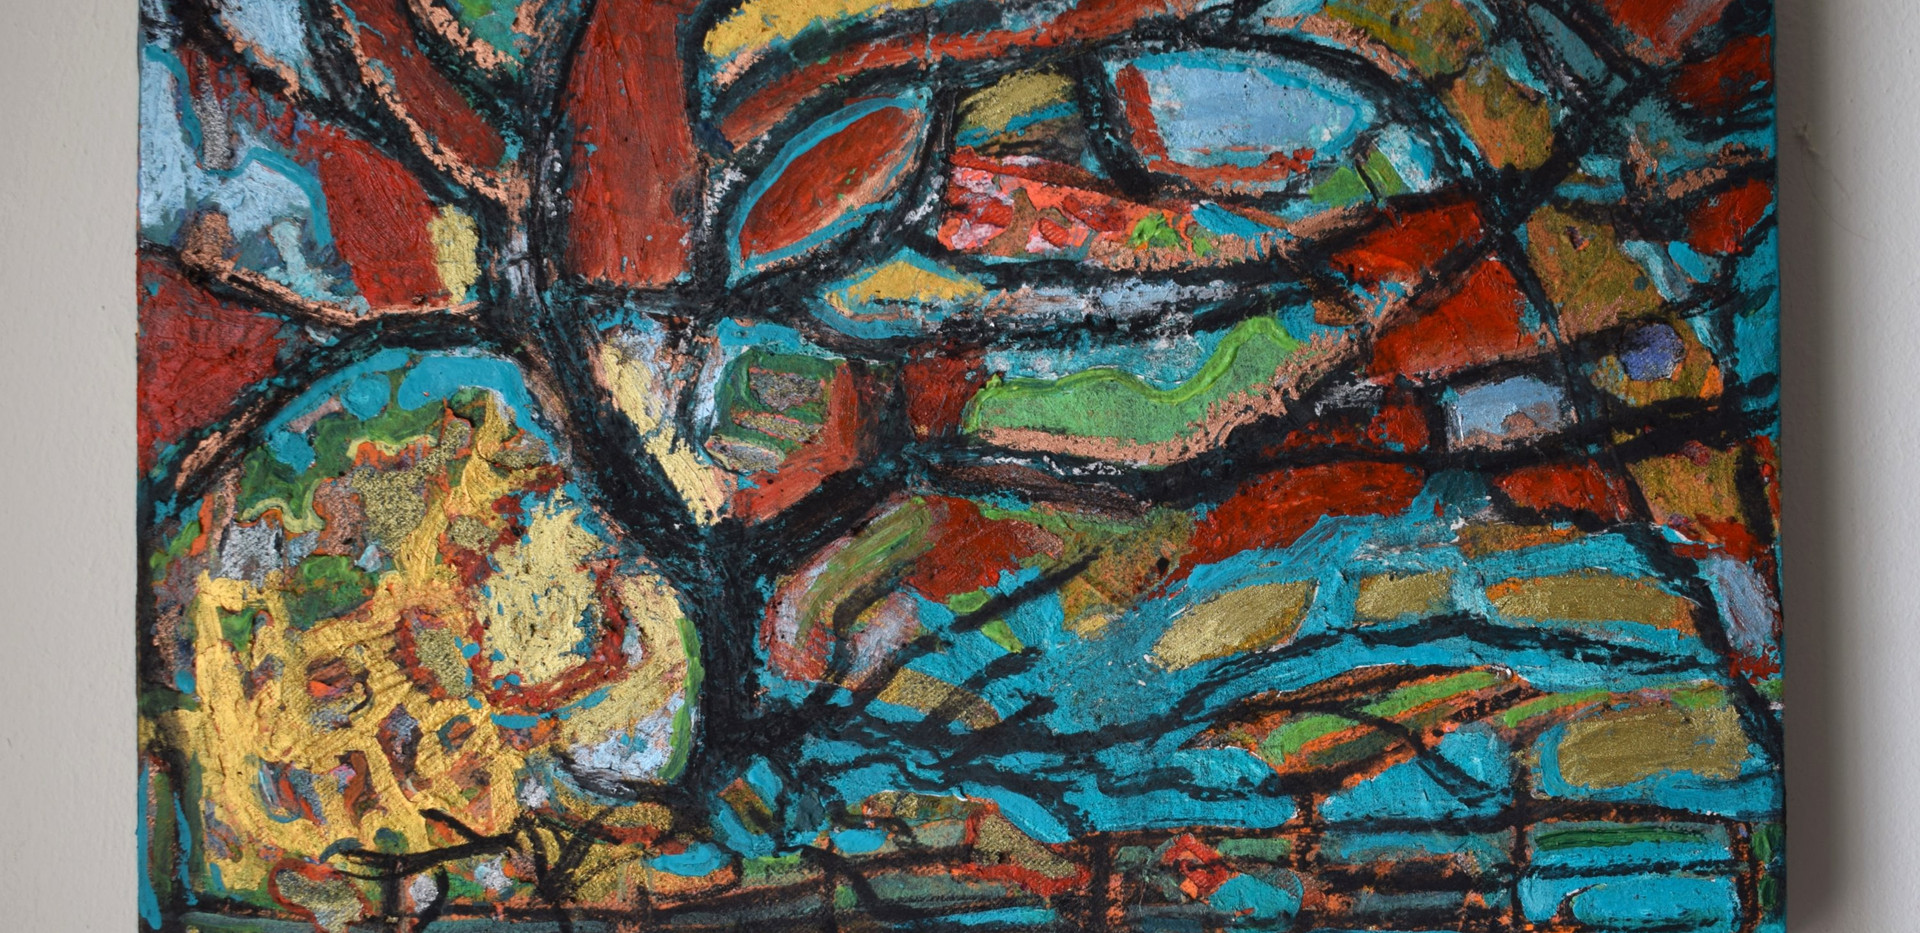 Strange Tree. Oil pastel, oil paint, acrylic, gesso and charcoal on stretched canvas. 30 x 20cm. Private collection.